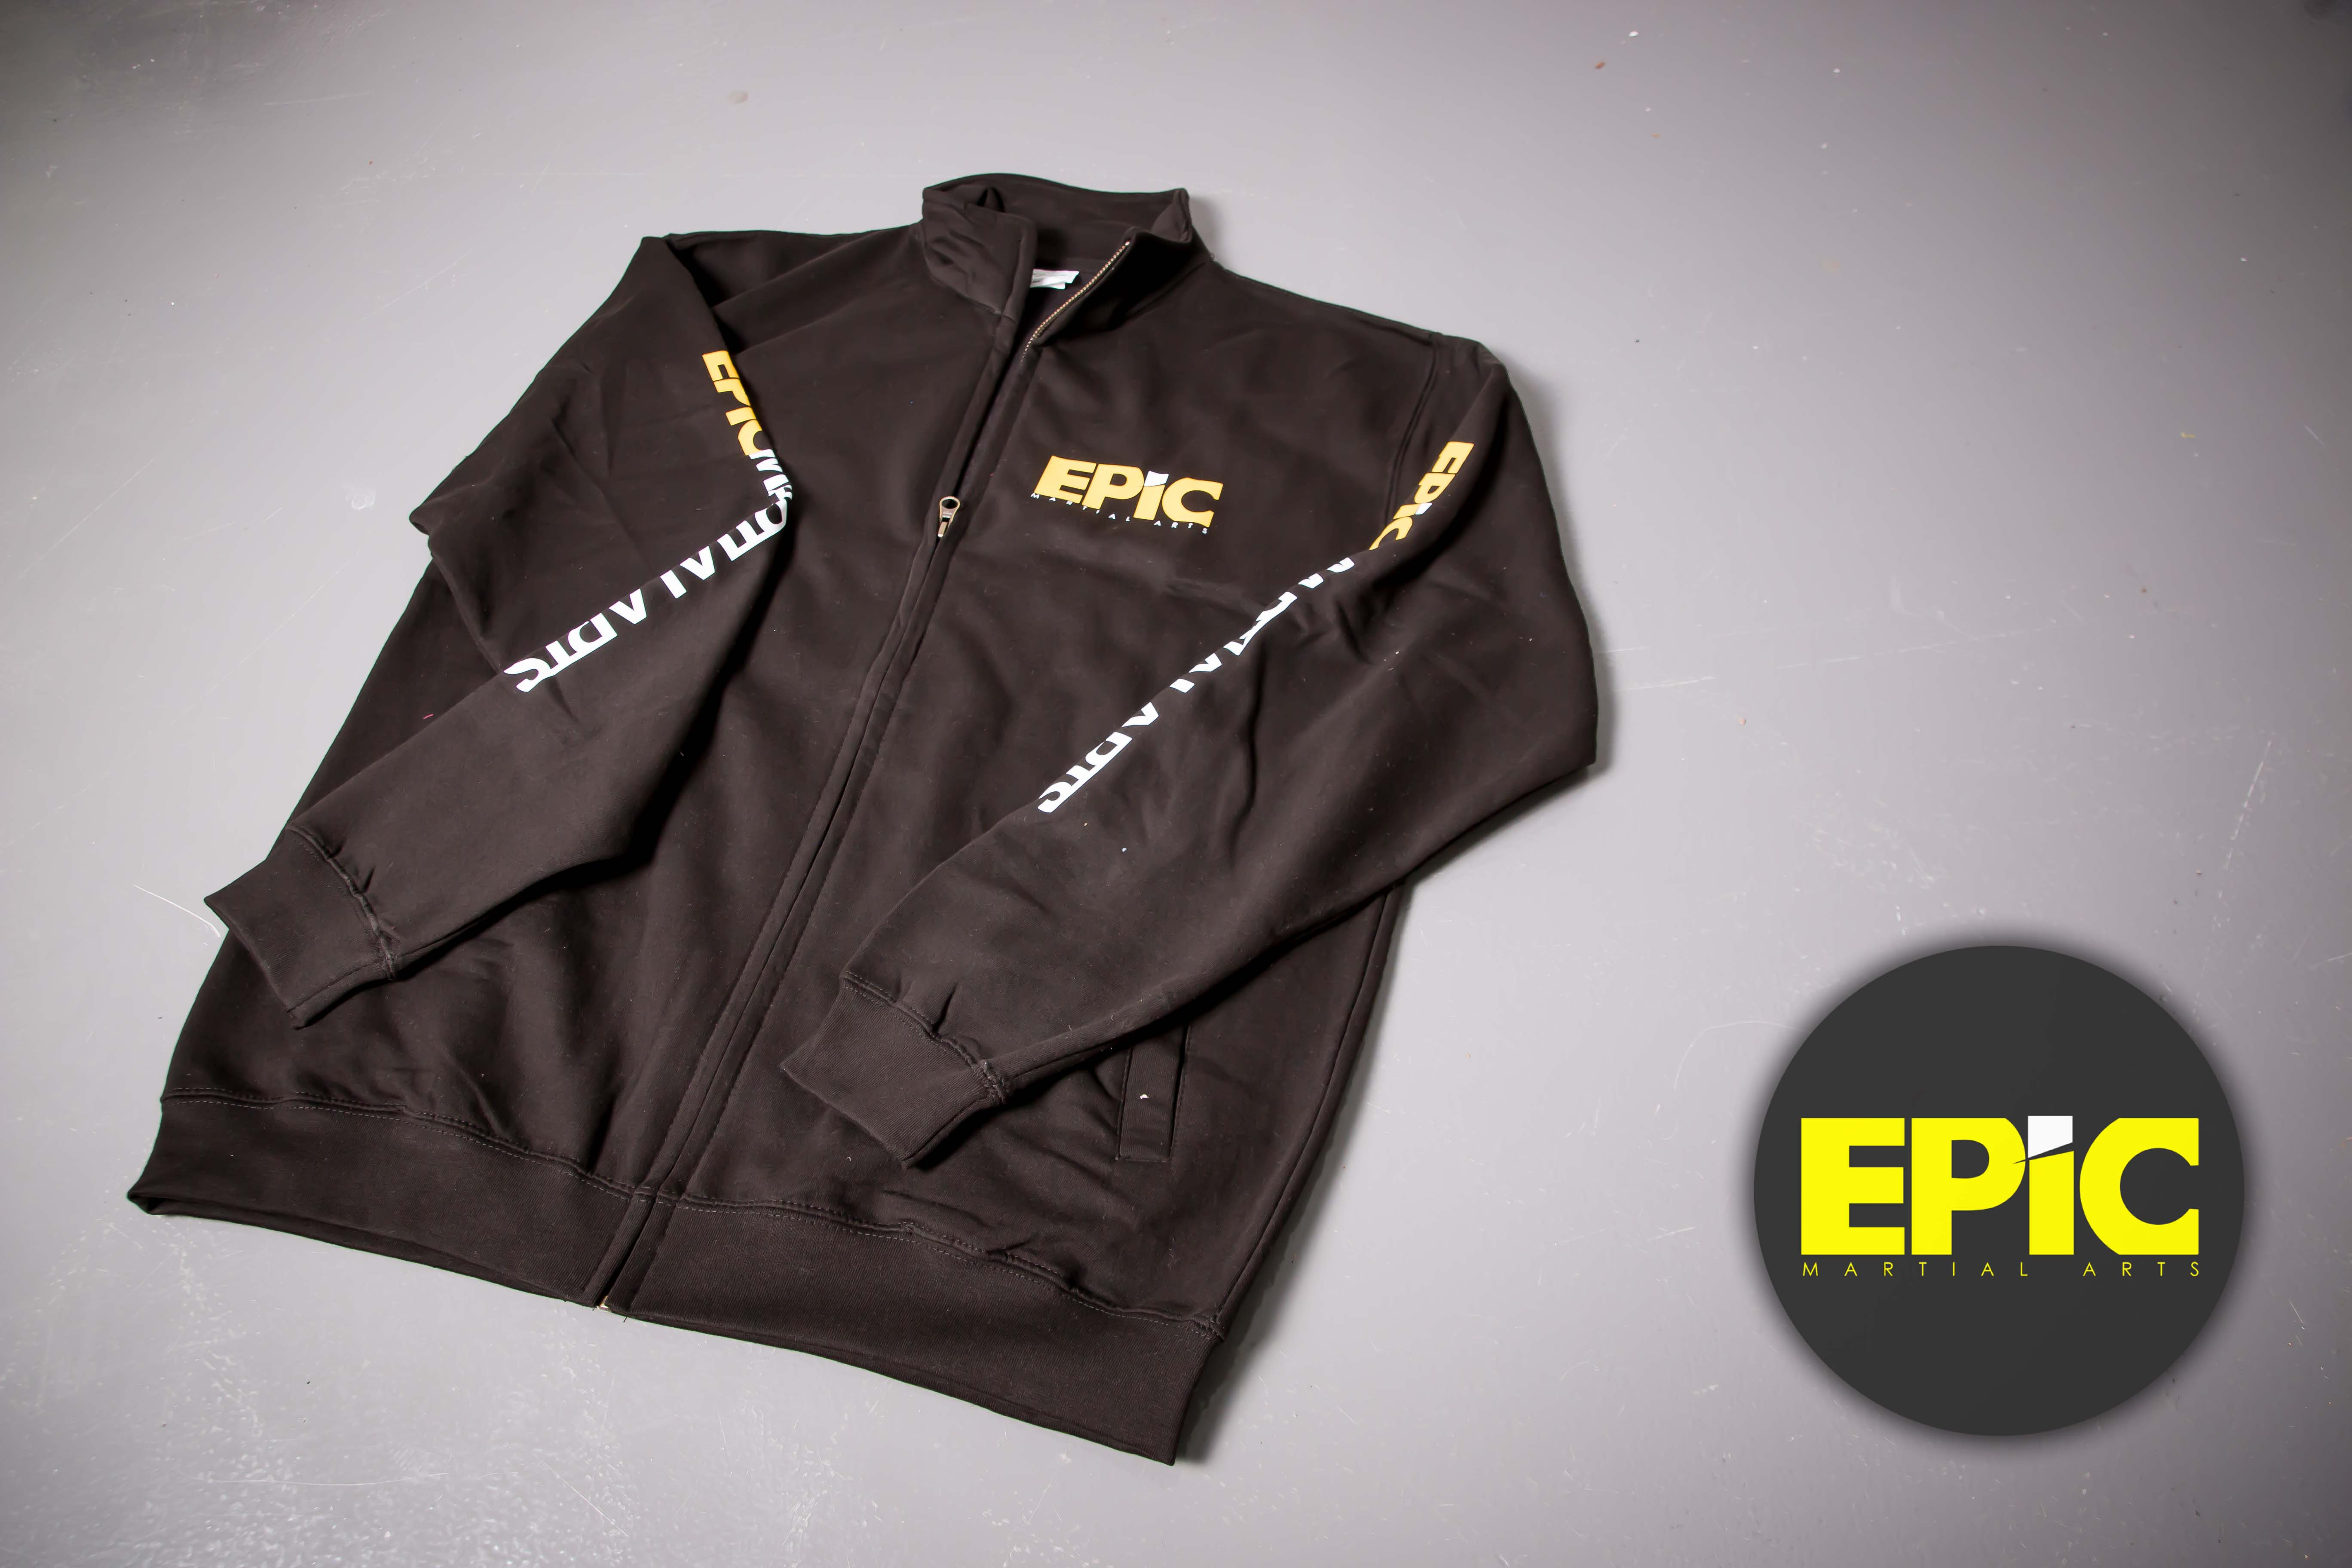 Epic clothing store